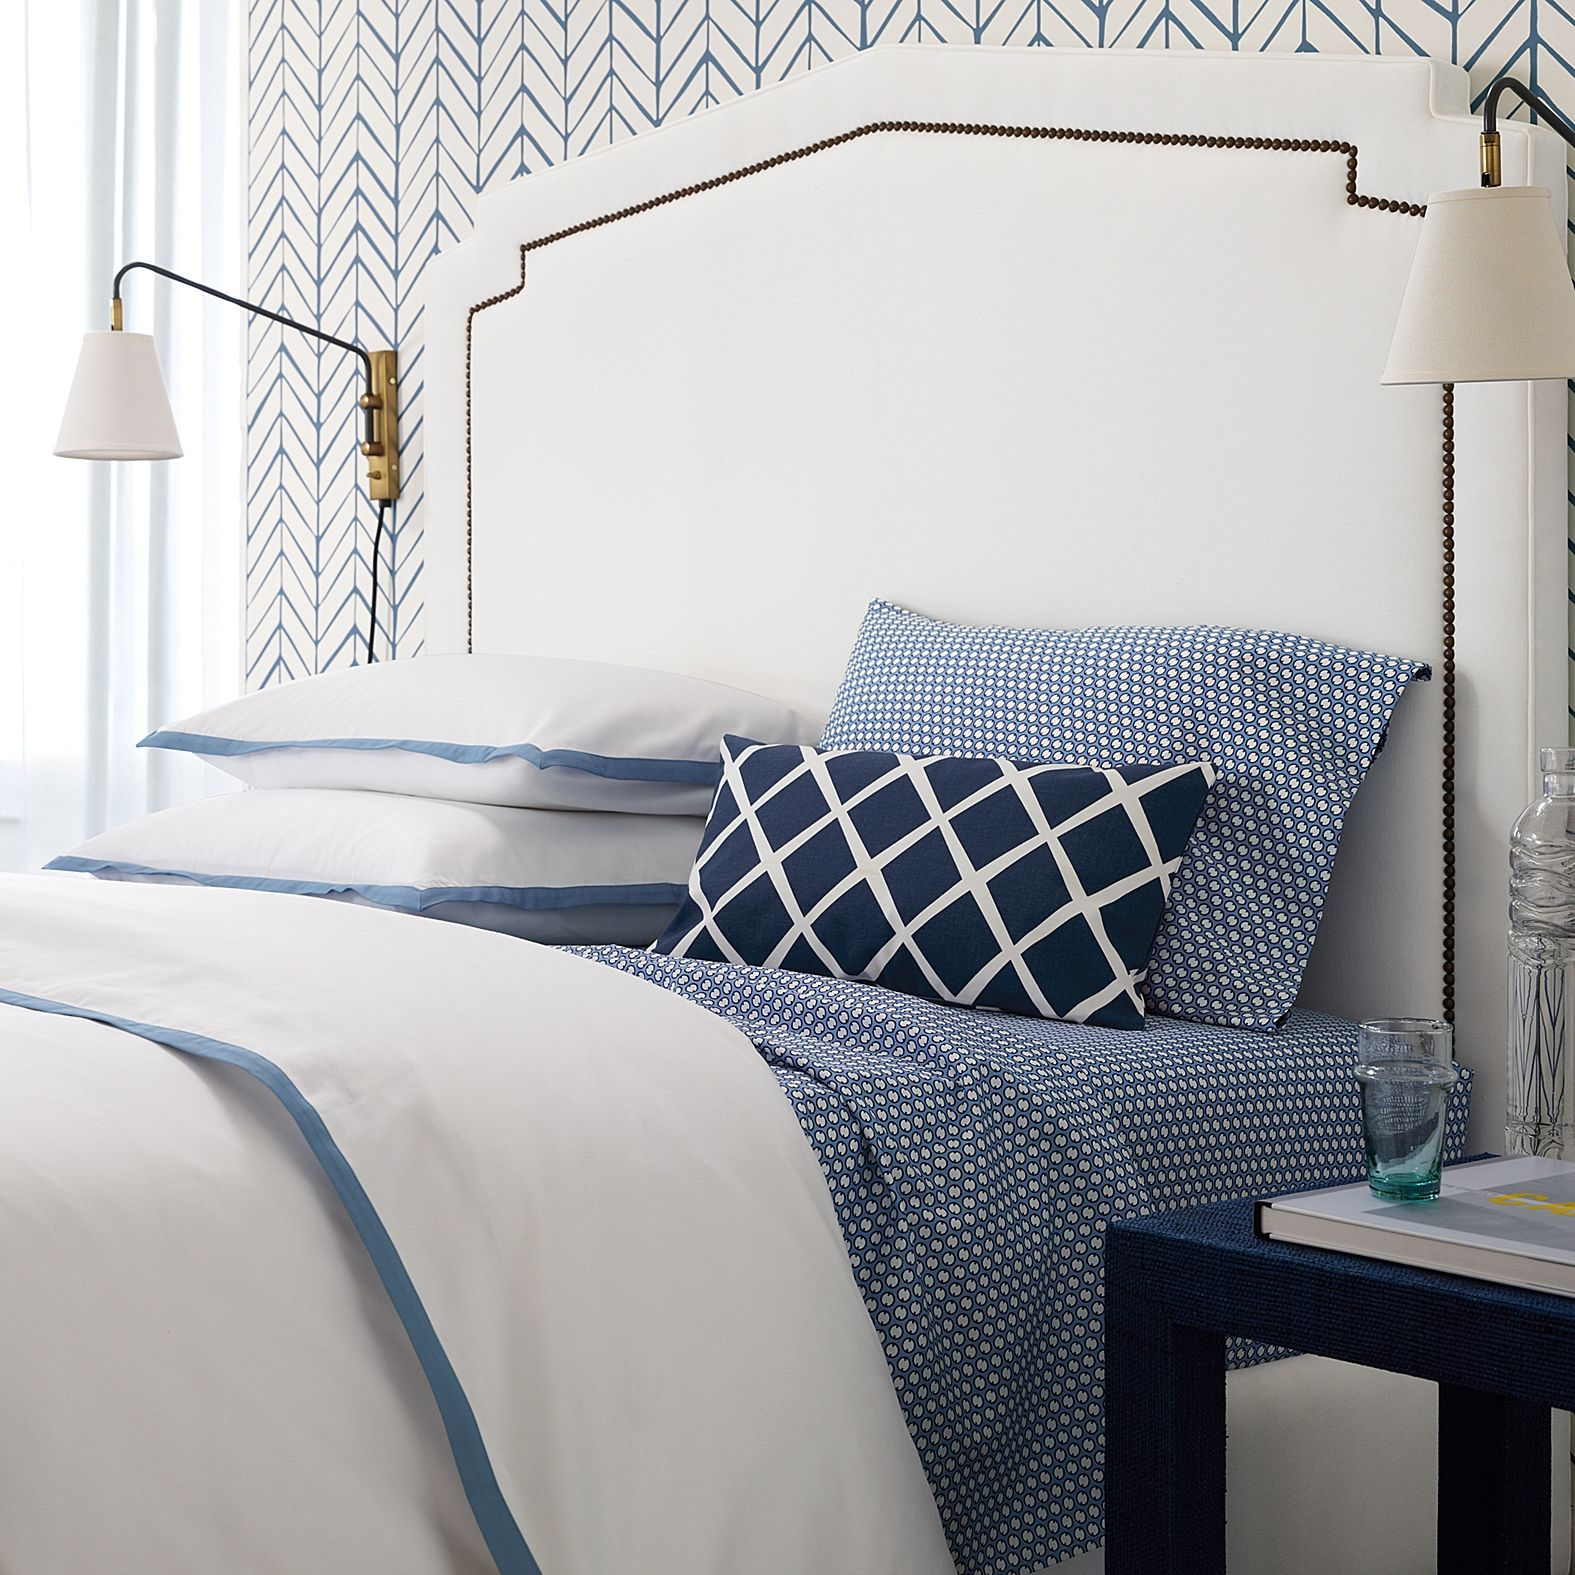 Best Blue White Bedroom Feather Wallpaper From Serena Lily 400 x 300